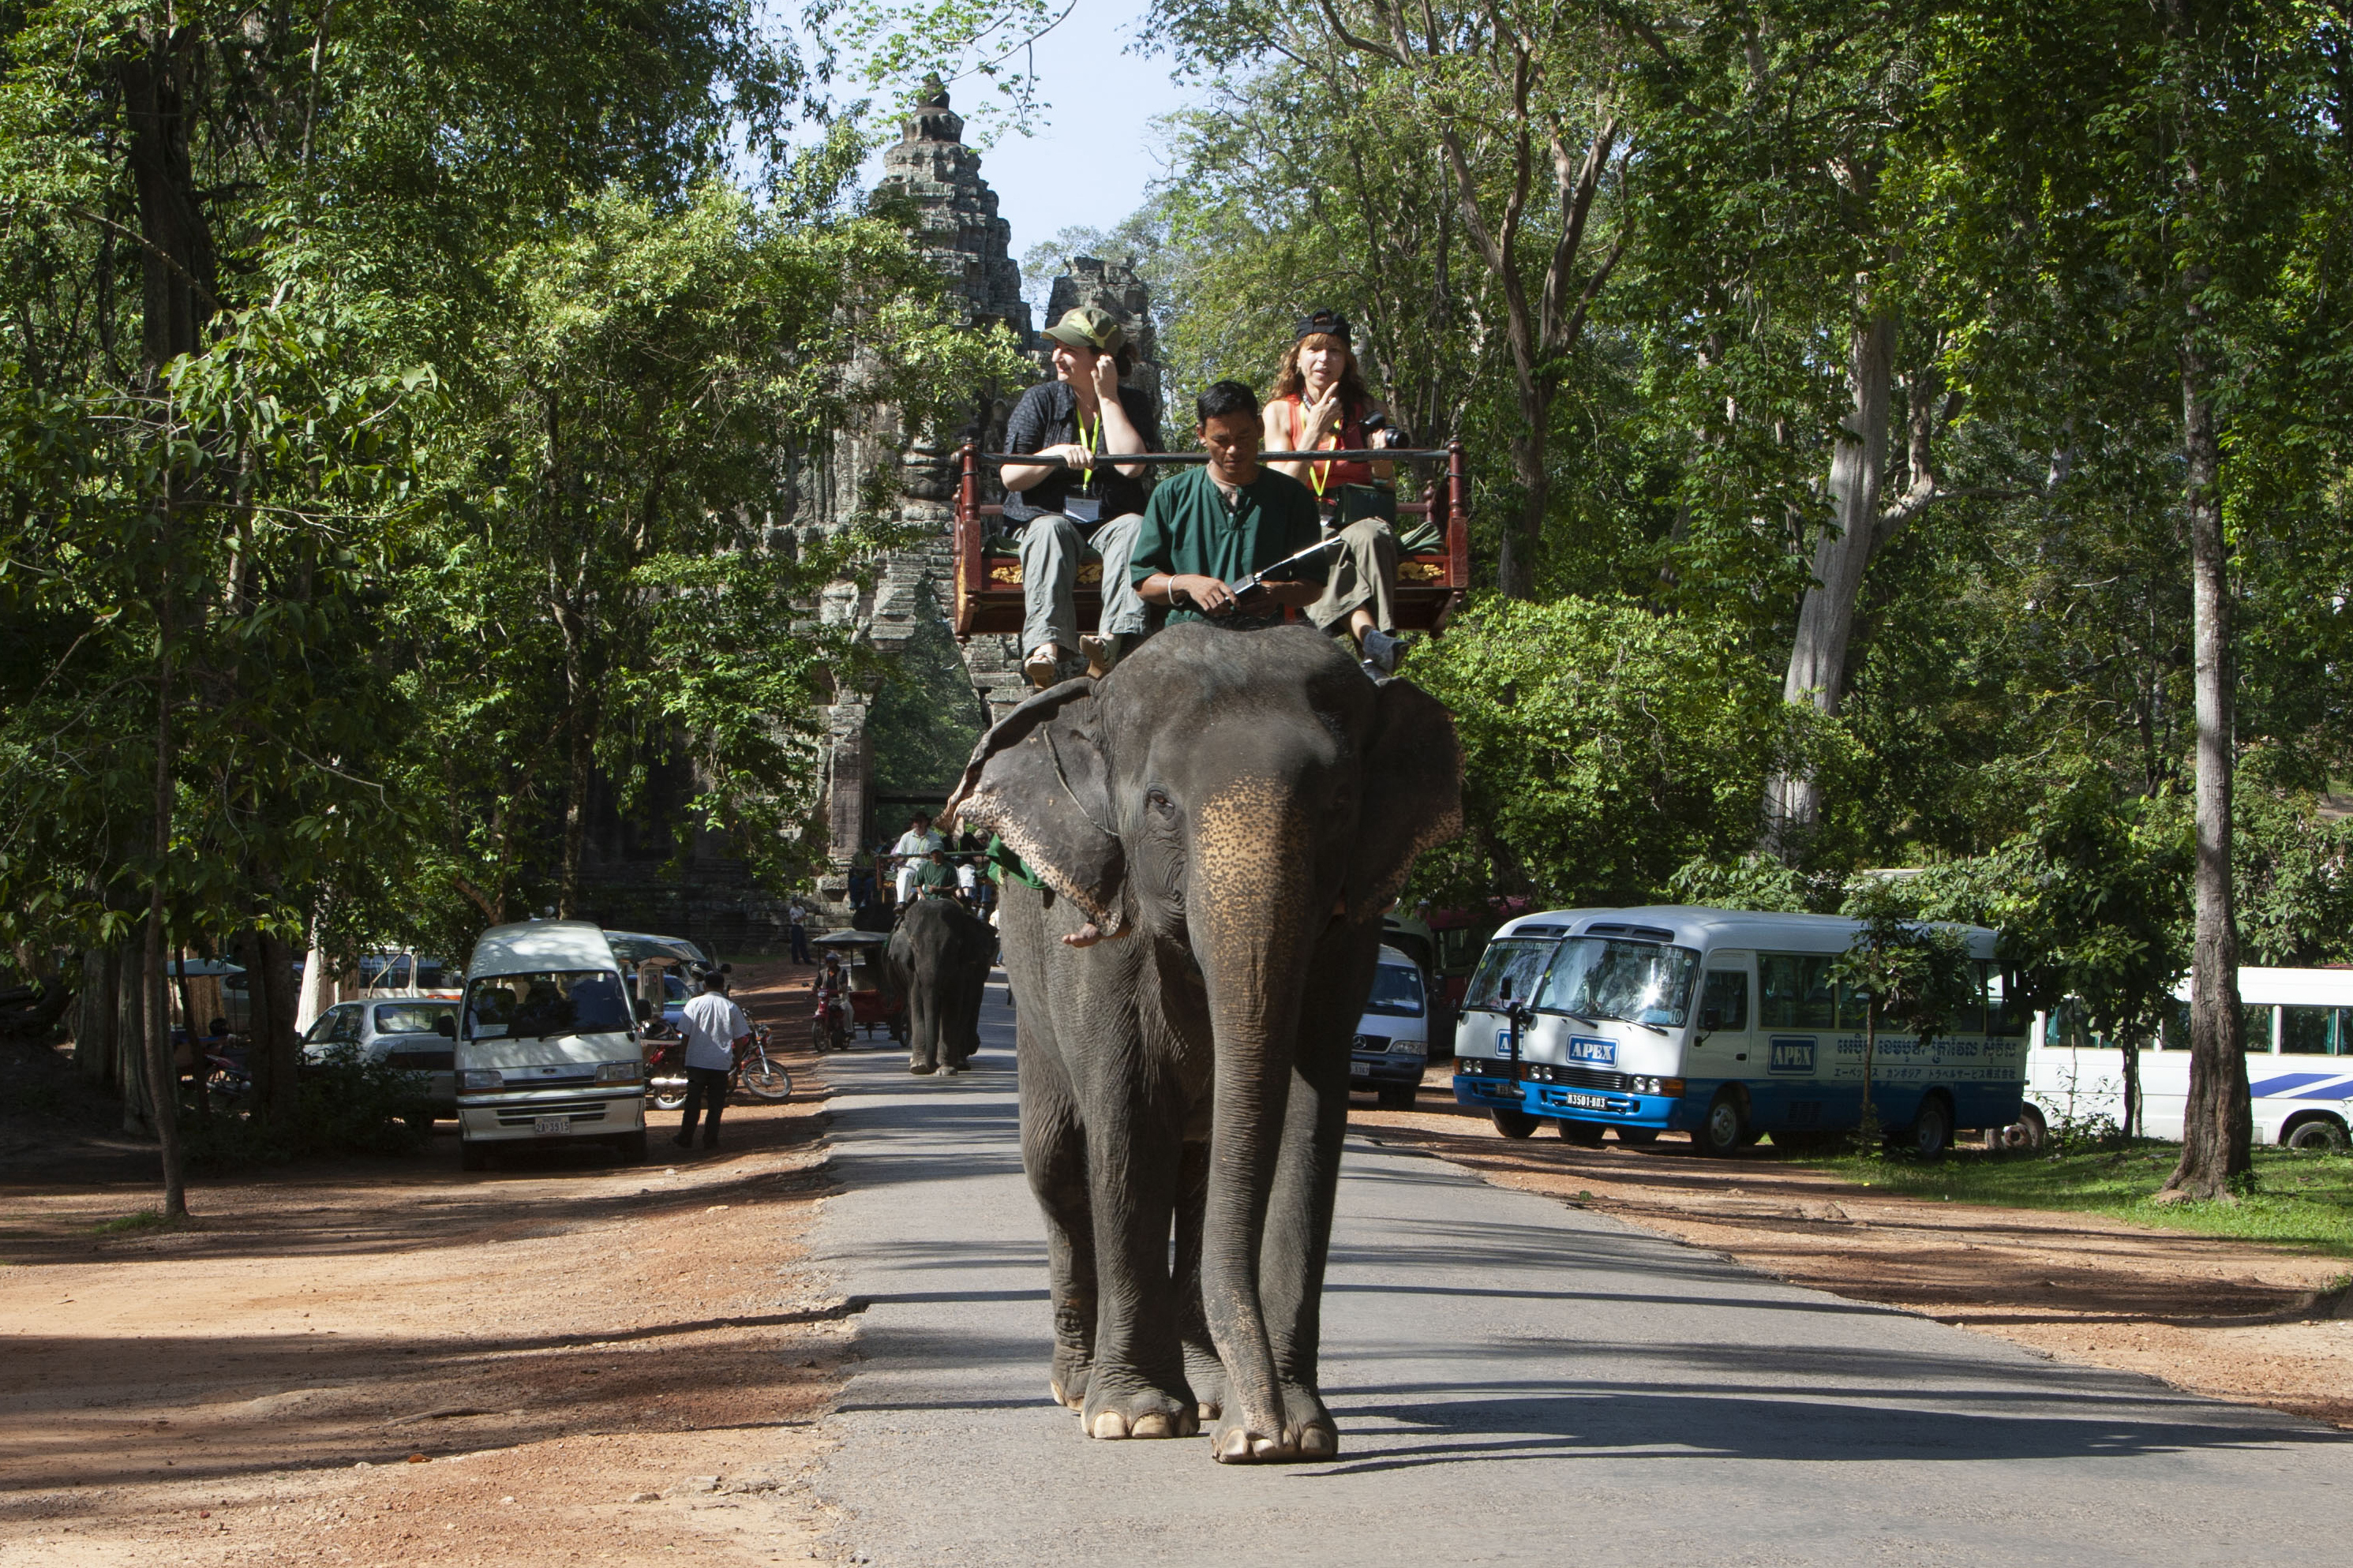 Tourists riding elephant in Cambodia's Angkor park